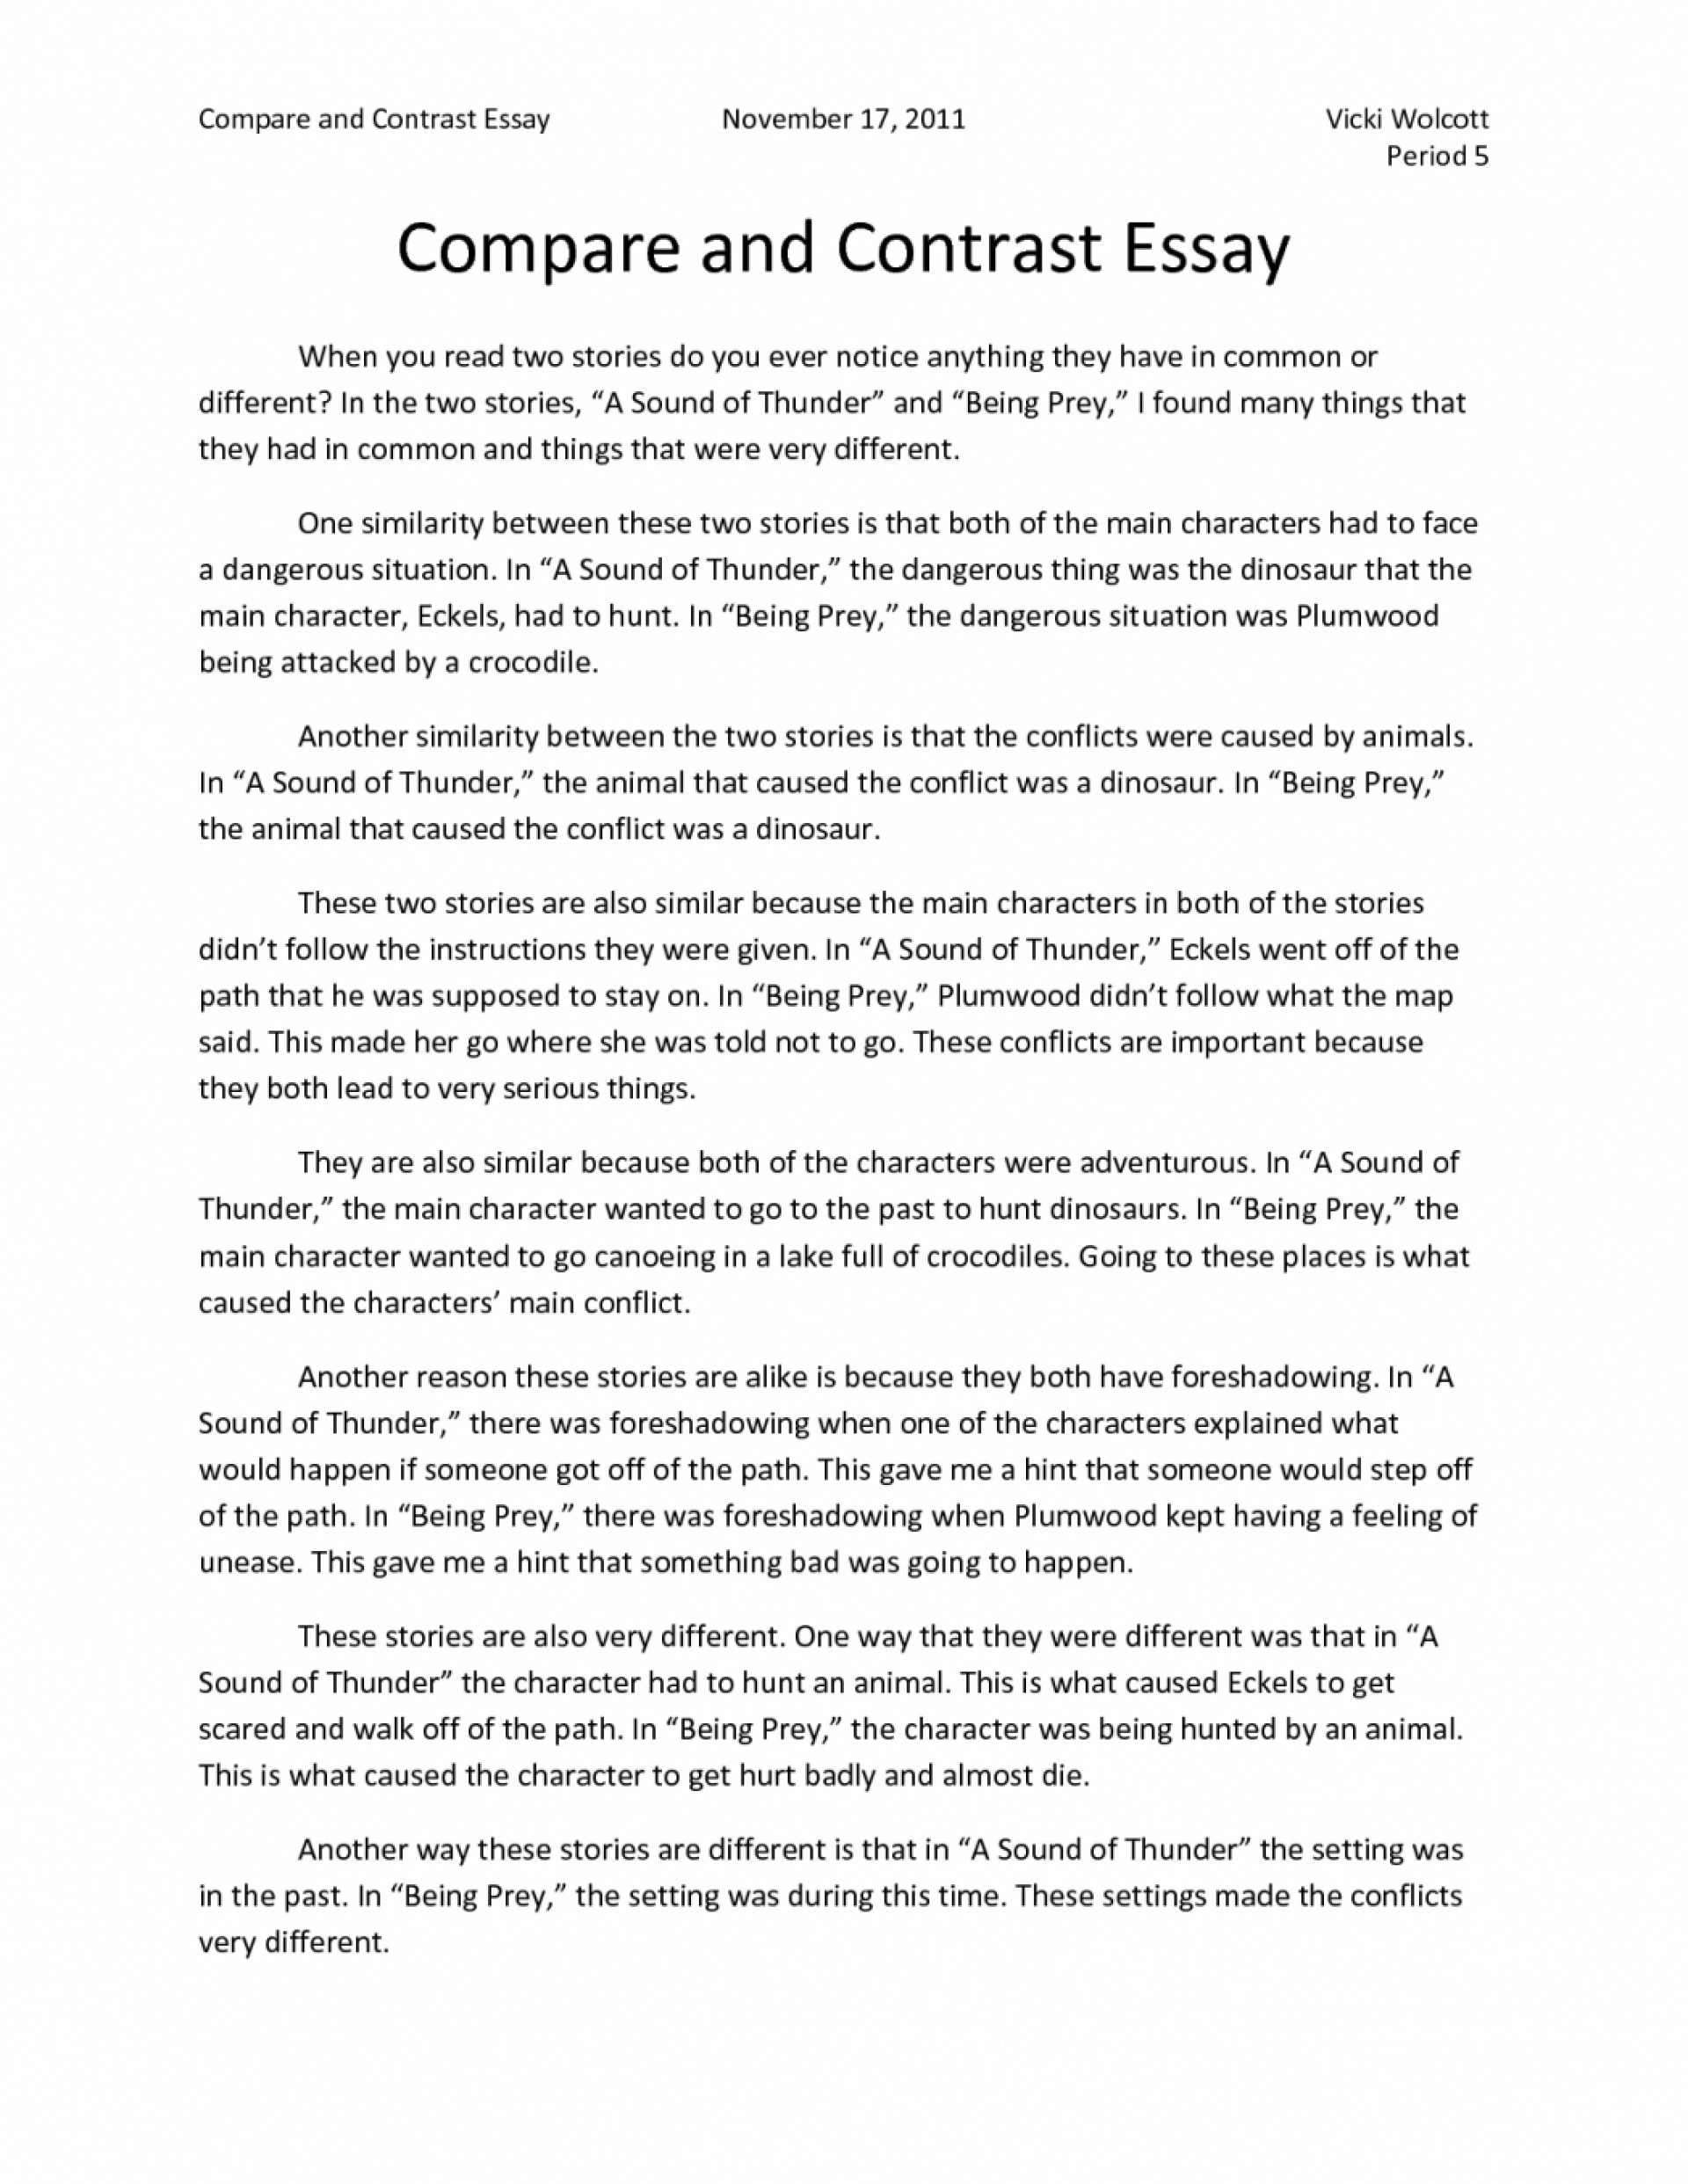 014 Conclusion For Compare And Contrast Essay Writing Comparison Argumentative Example How To Write An Samples Awesome A Paragraph Examples 1920